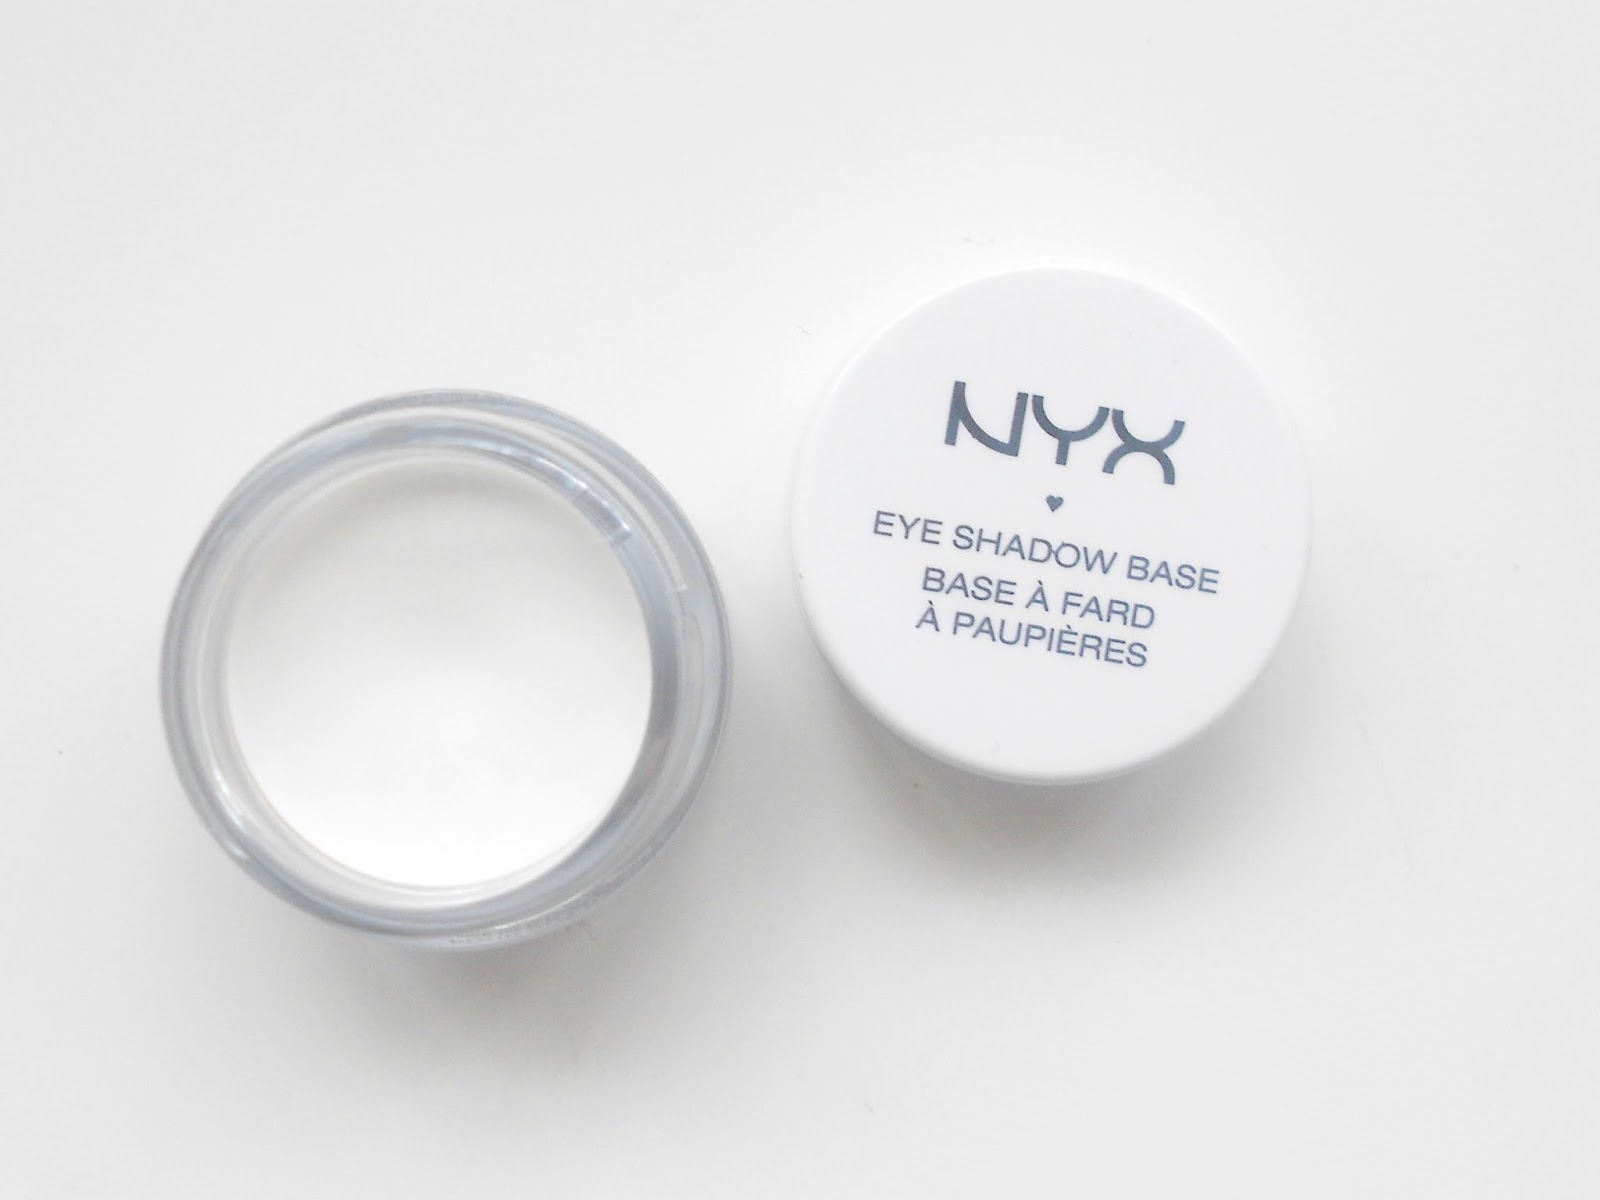 nyx eyeshadow base primer review